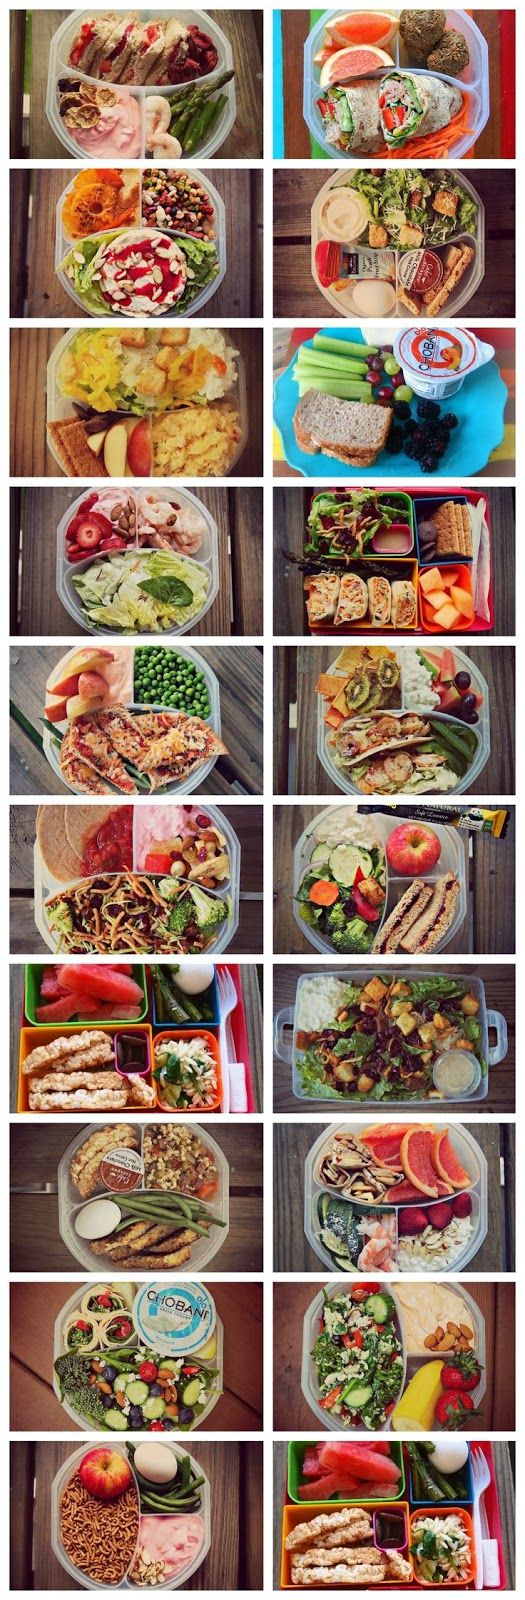 20 healthy lunch ideas #prepday #diy